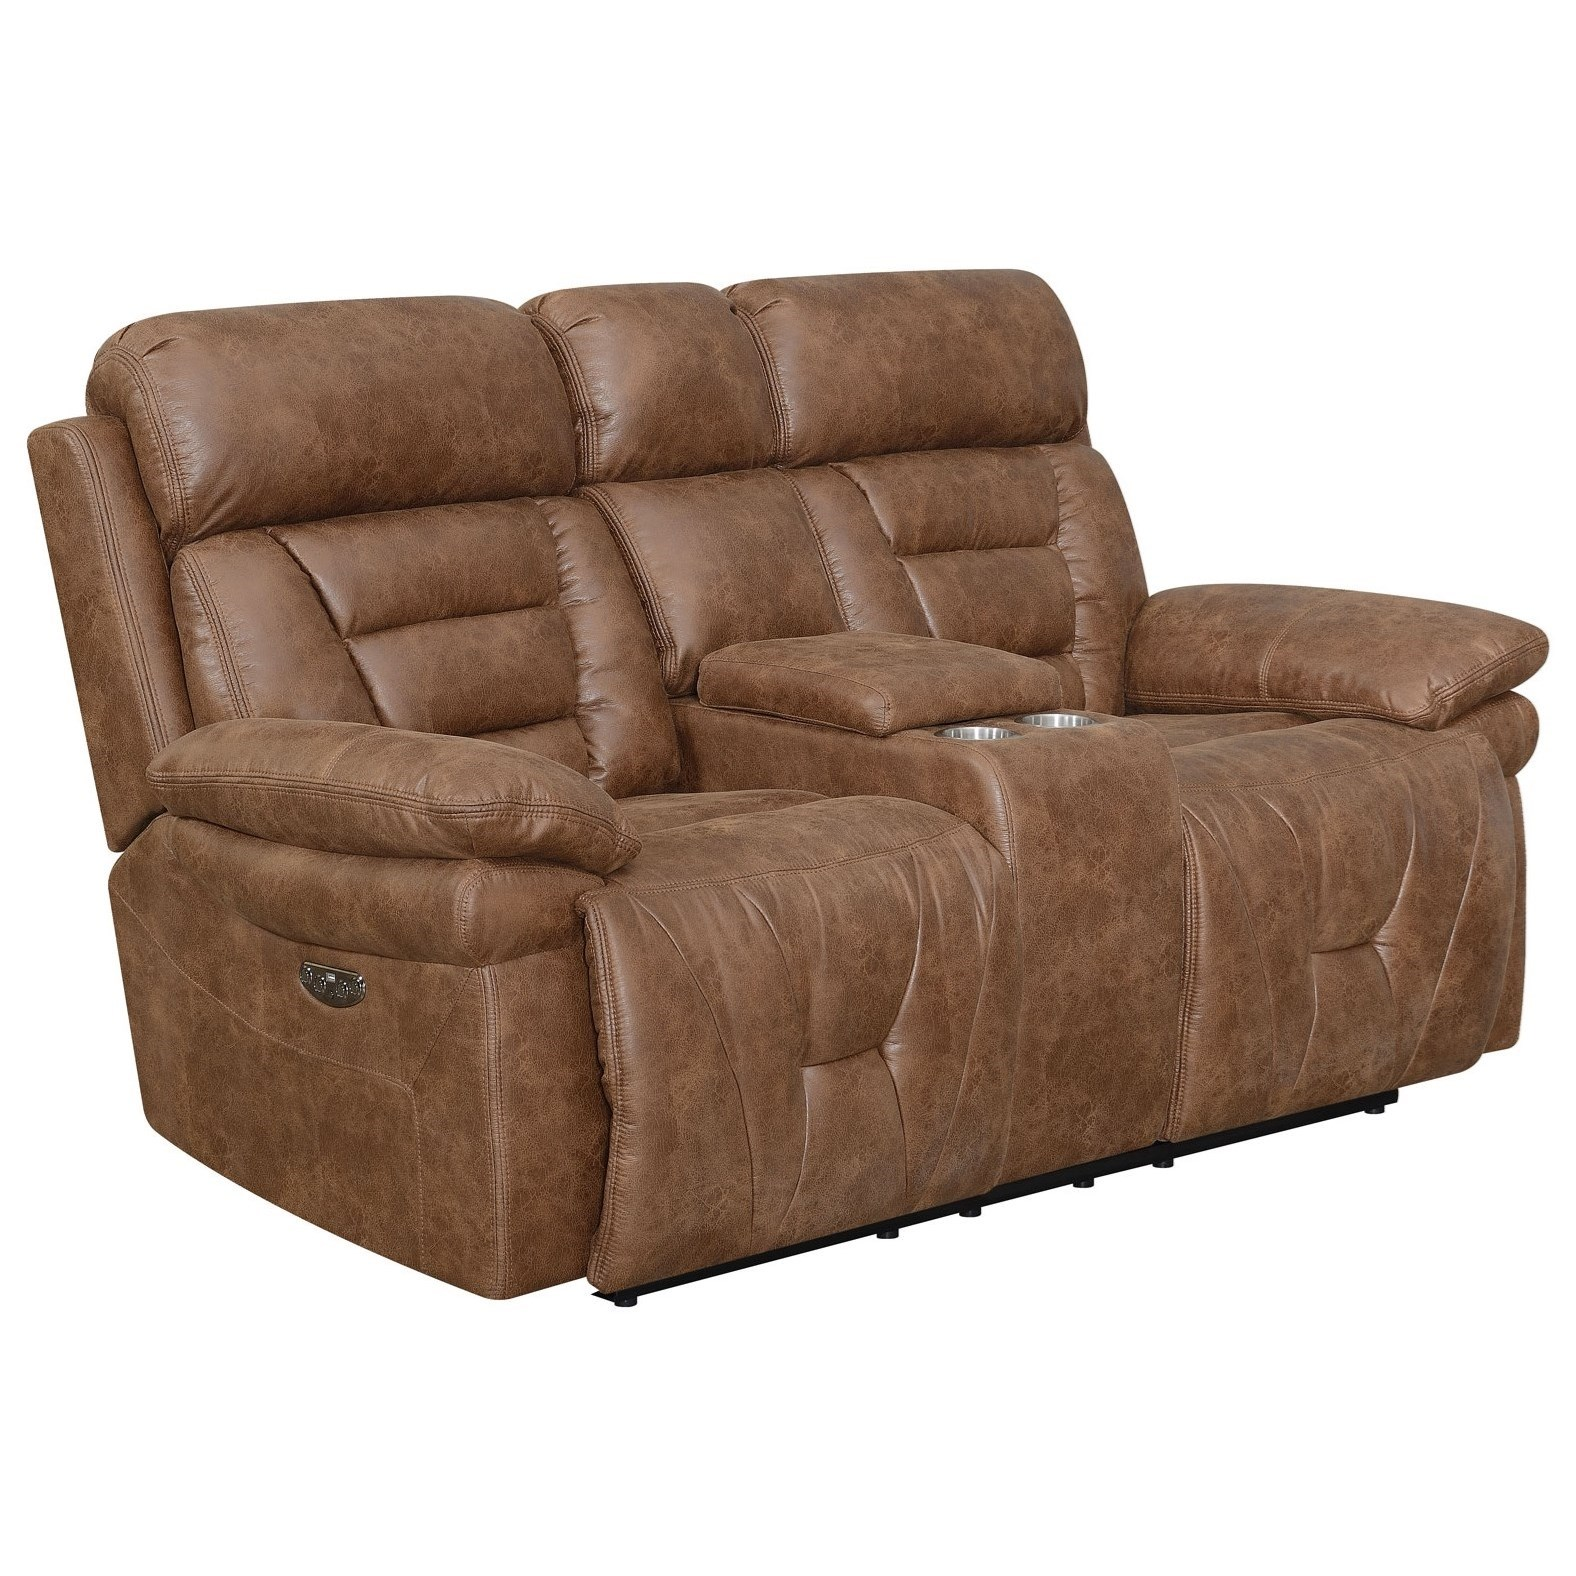 Brock Lay Flat Power Reclining Loveseat by Steve Silver at Standard Furniture